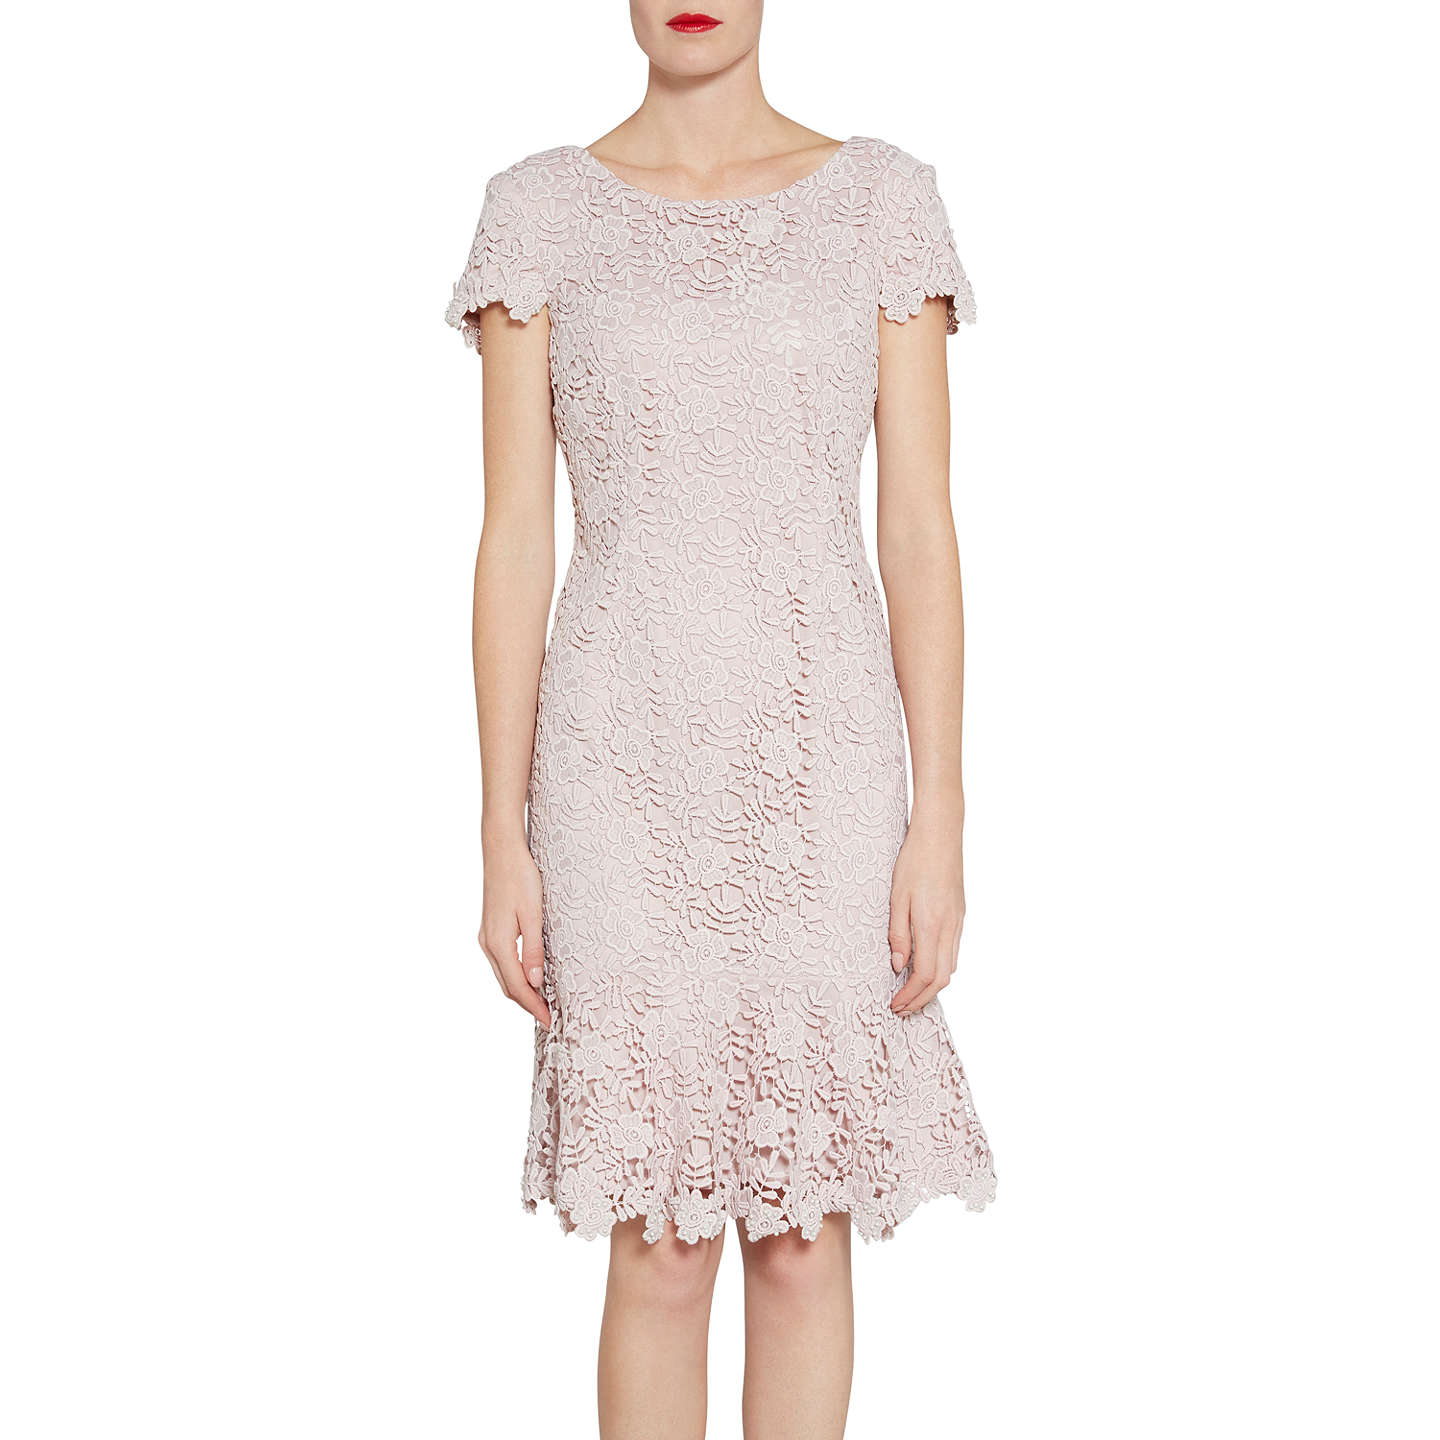 Clearance Marketable Buy Cheap Outlet Locations Womens Matt Primrose Guipure Dress Gina Bacconi cbP30c